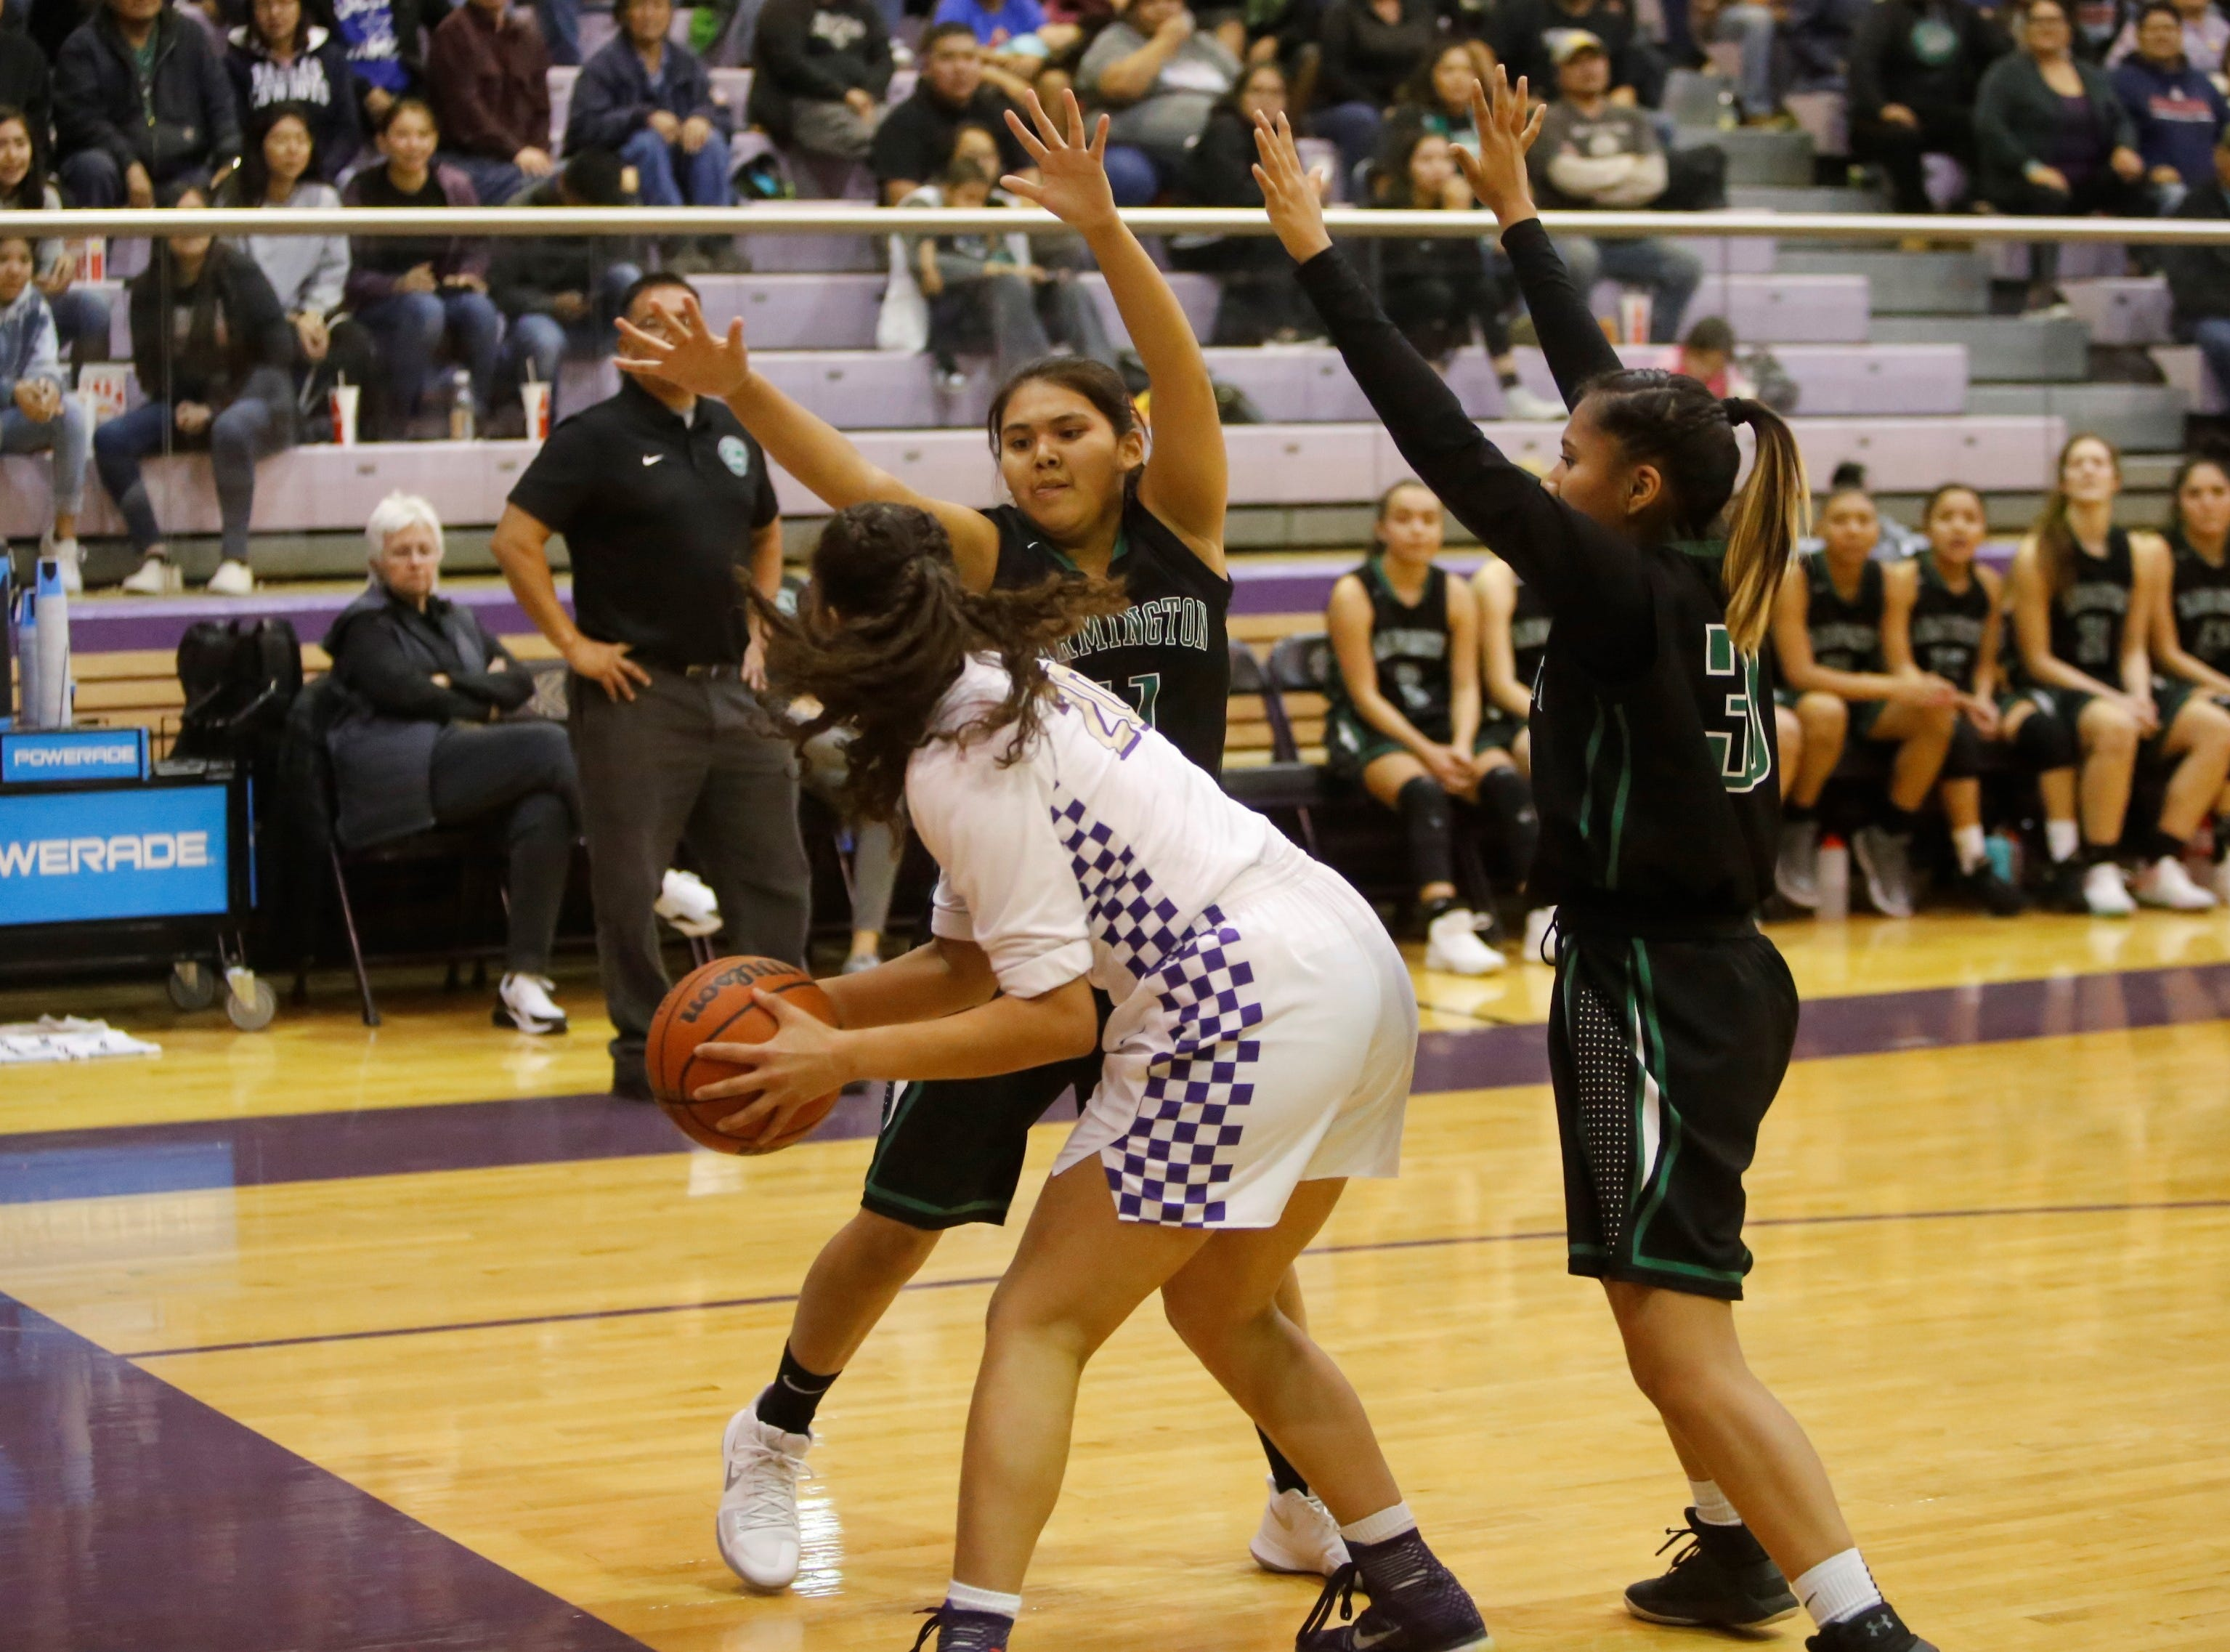 Farmington's Philinda Nez (11) and Carolyn Thomas (30) swarm around Kirtland Central's Siigrid Lii'bilnaghahi during Tuesday's game at Bronco Arena in Kirtland.